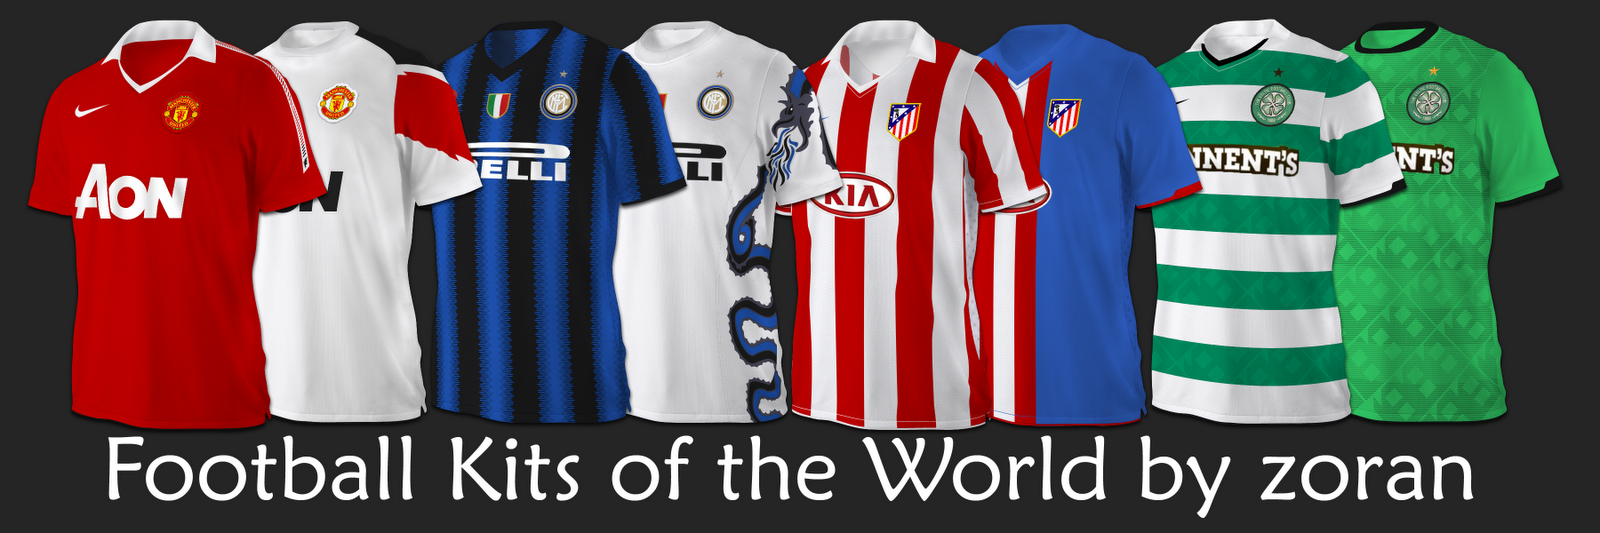 football kits of the world